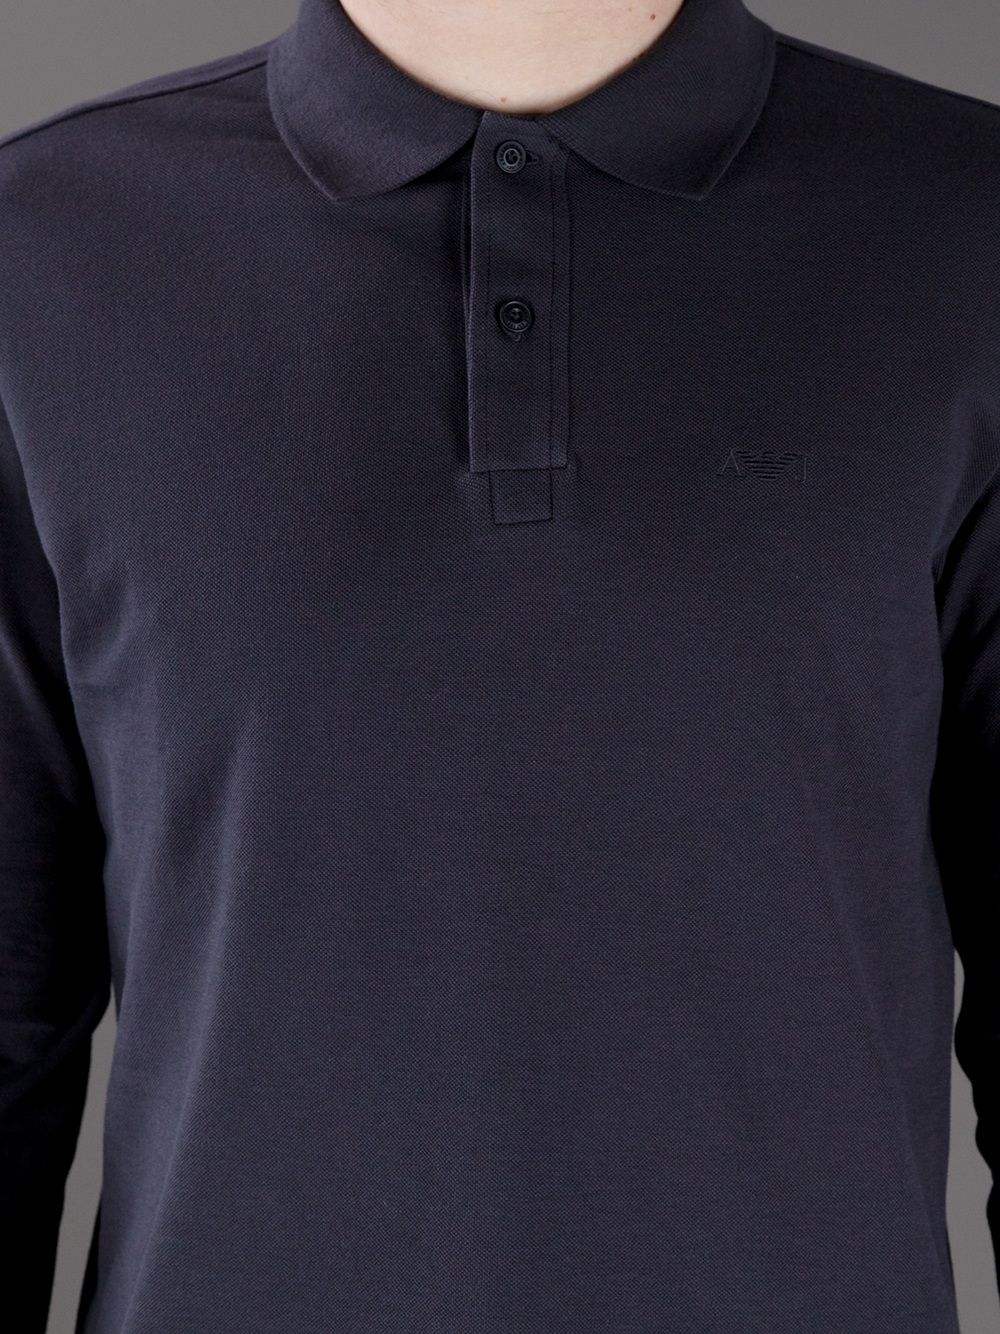 9fb3e01c Armani Jeans Navy Long Sleeve Shirt - raveitsafe